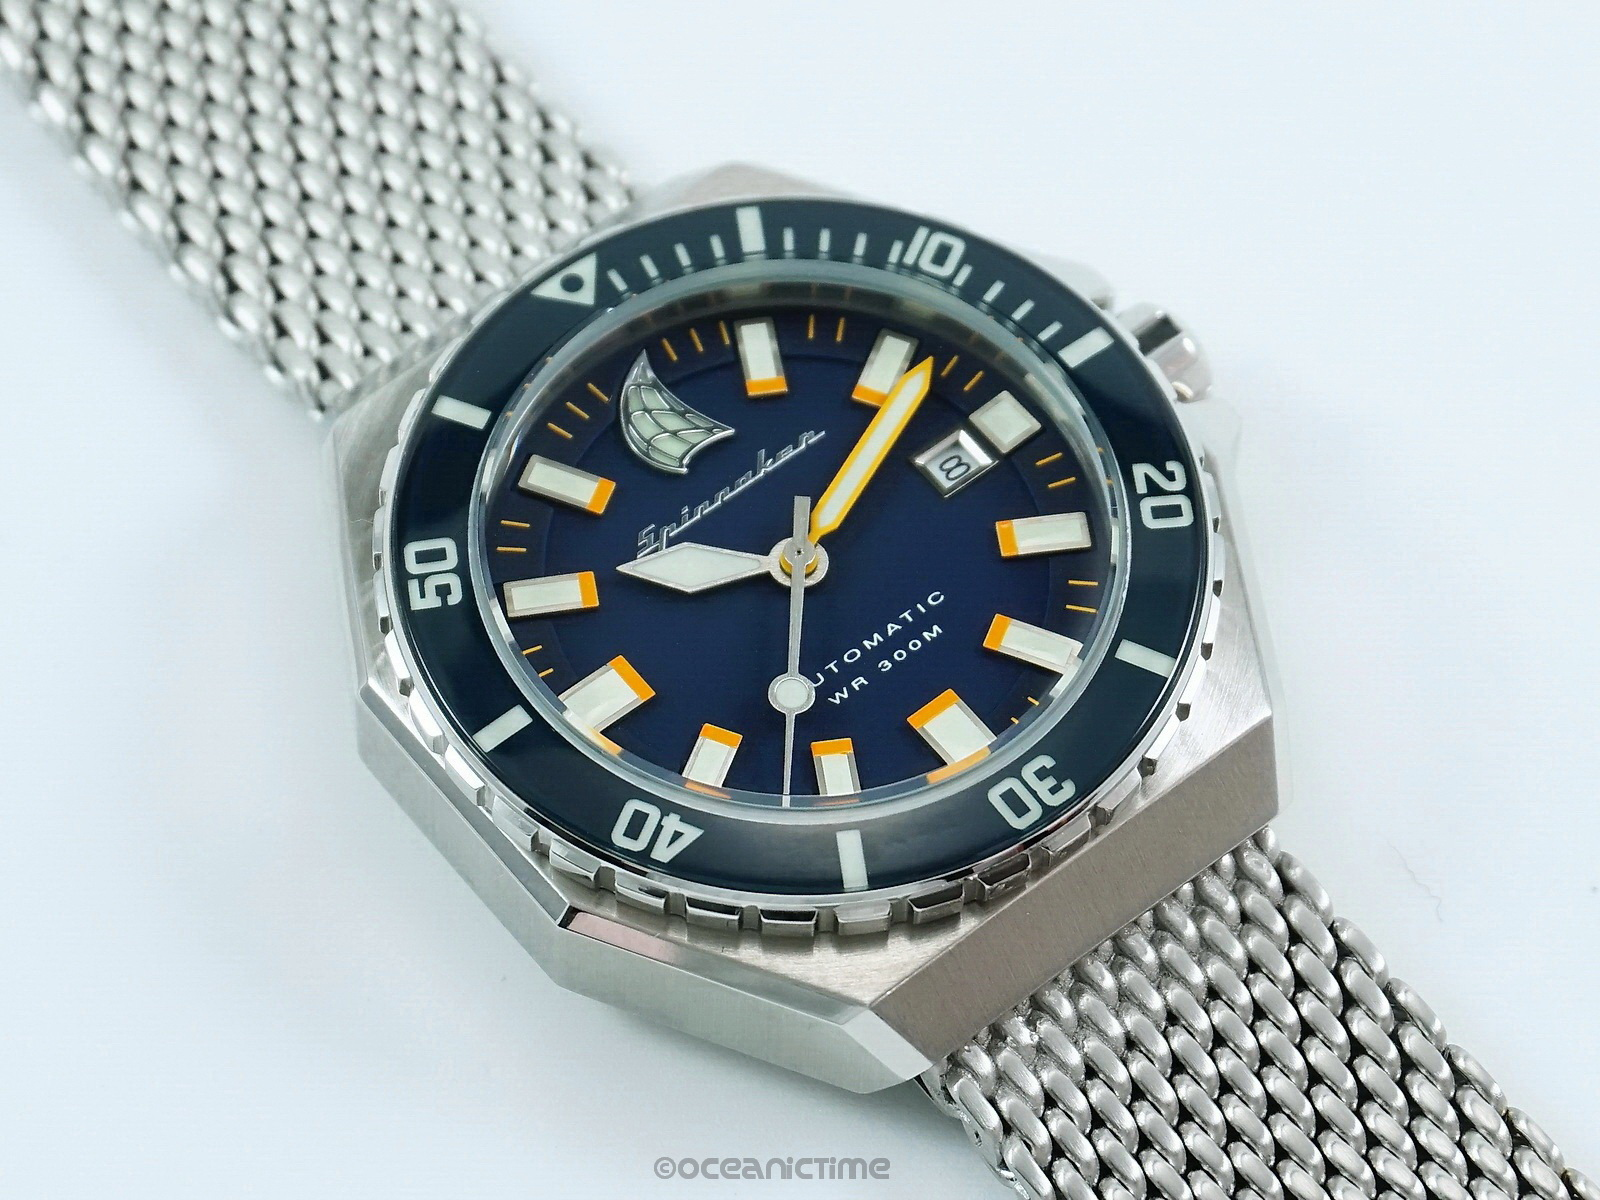 s watches seiko to patrol it have good find another dive the affordable reason see diver cheap scuba a under gear for blue like cult hard great following new lagoon best